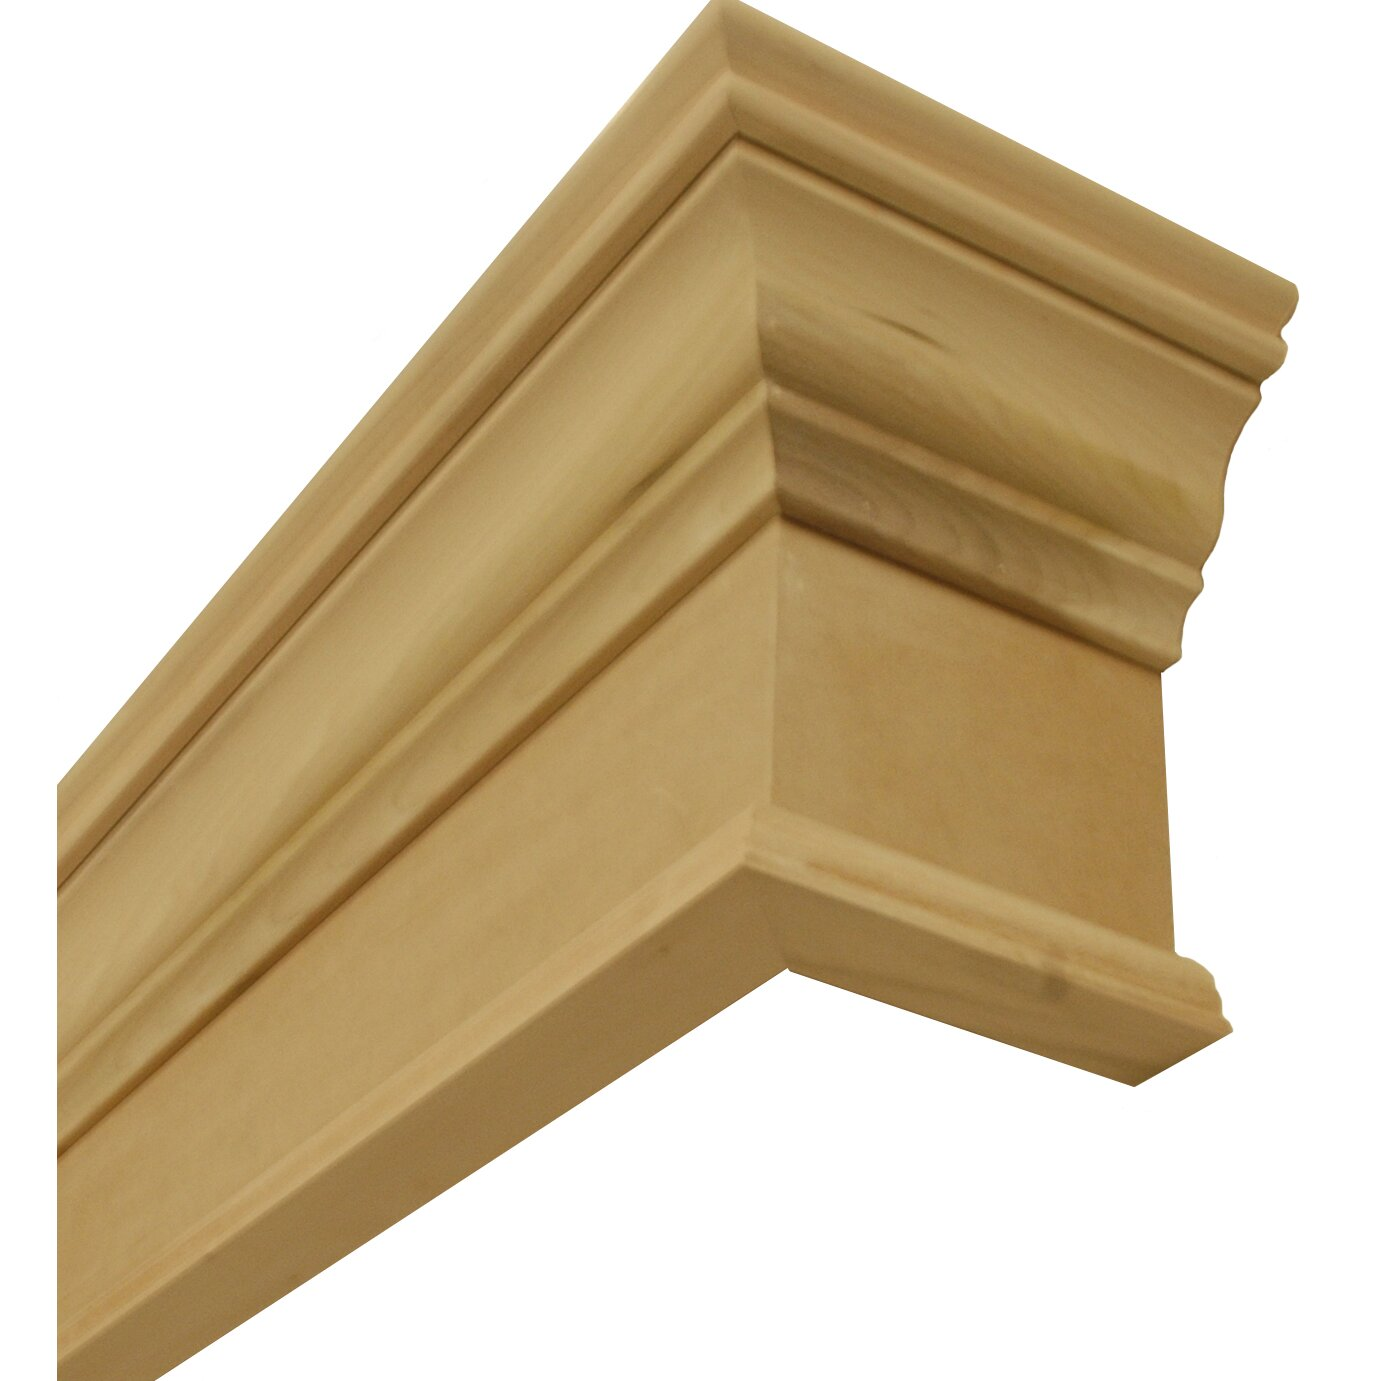 Curtain cornice rlf home royal damask cornice 50 for Stauraumwunder schrank